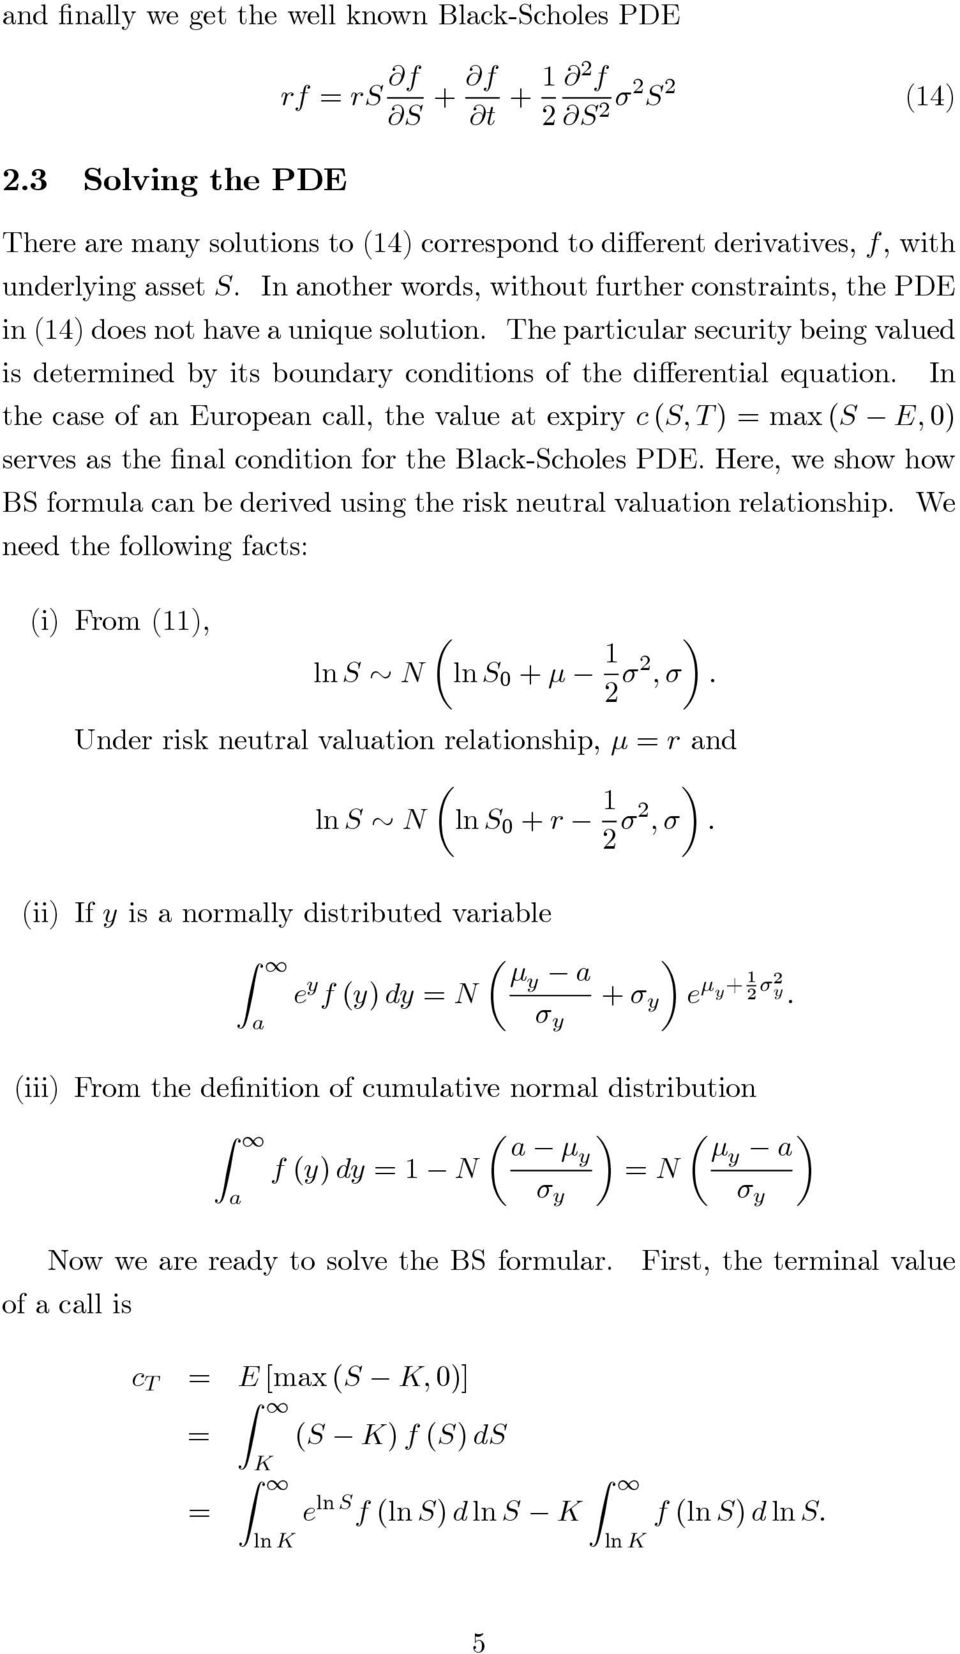 In another words, without further constraints, the PDE in (14) does not have a unique solution.